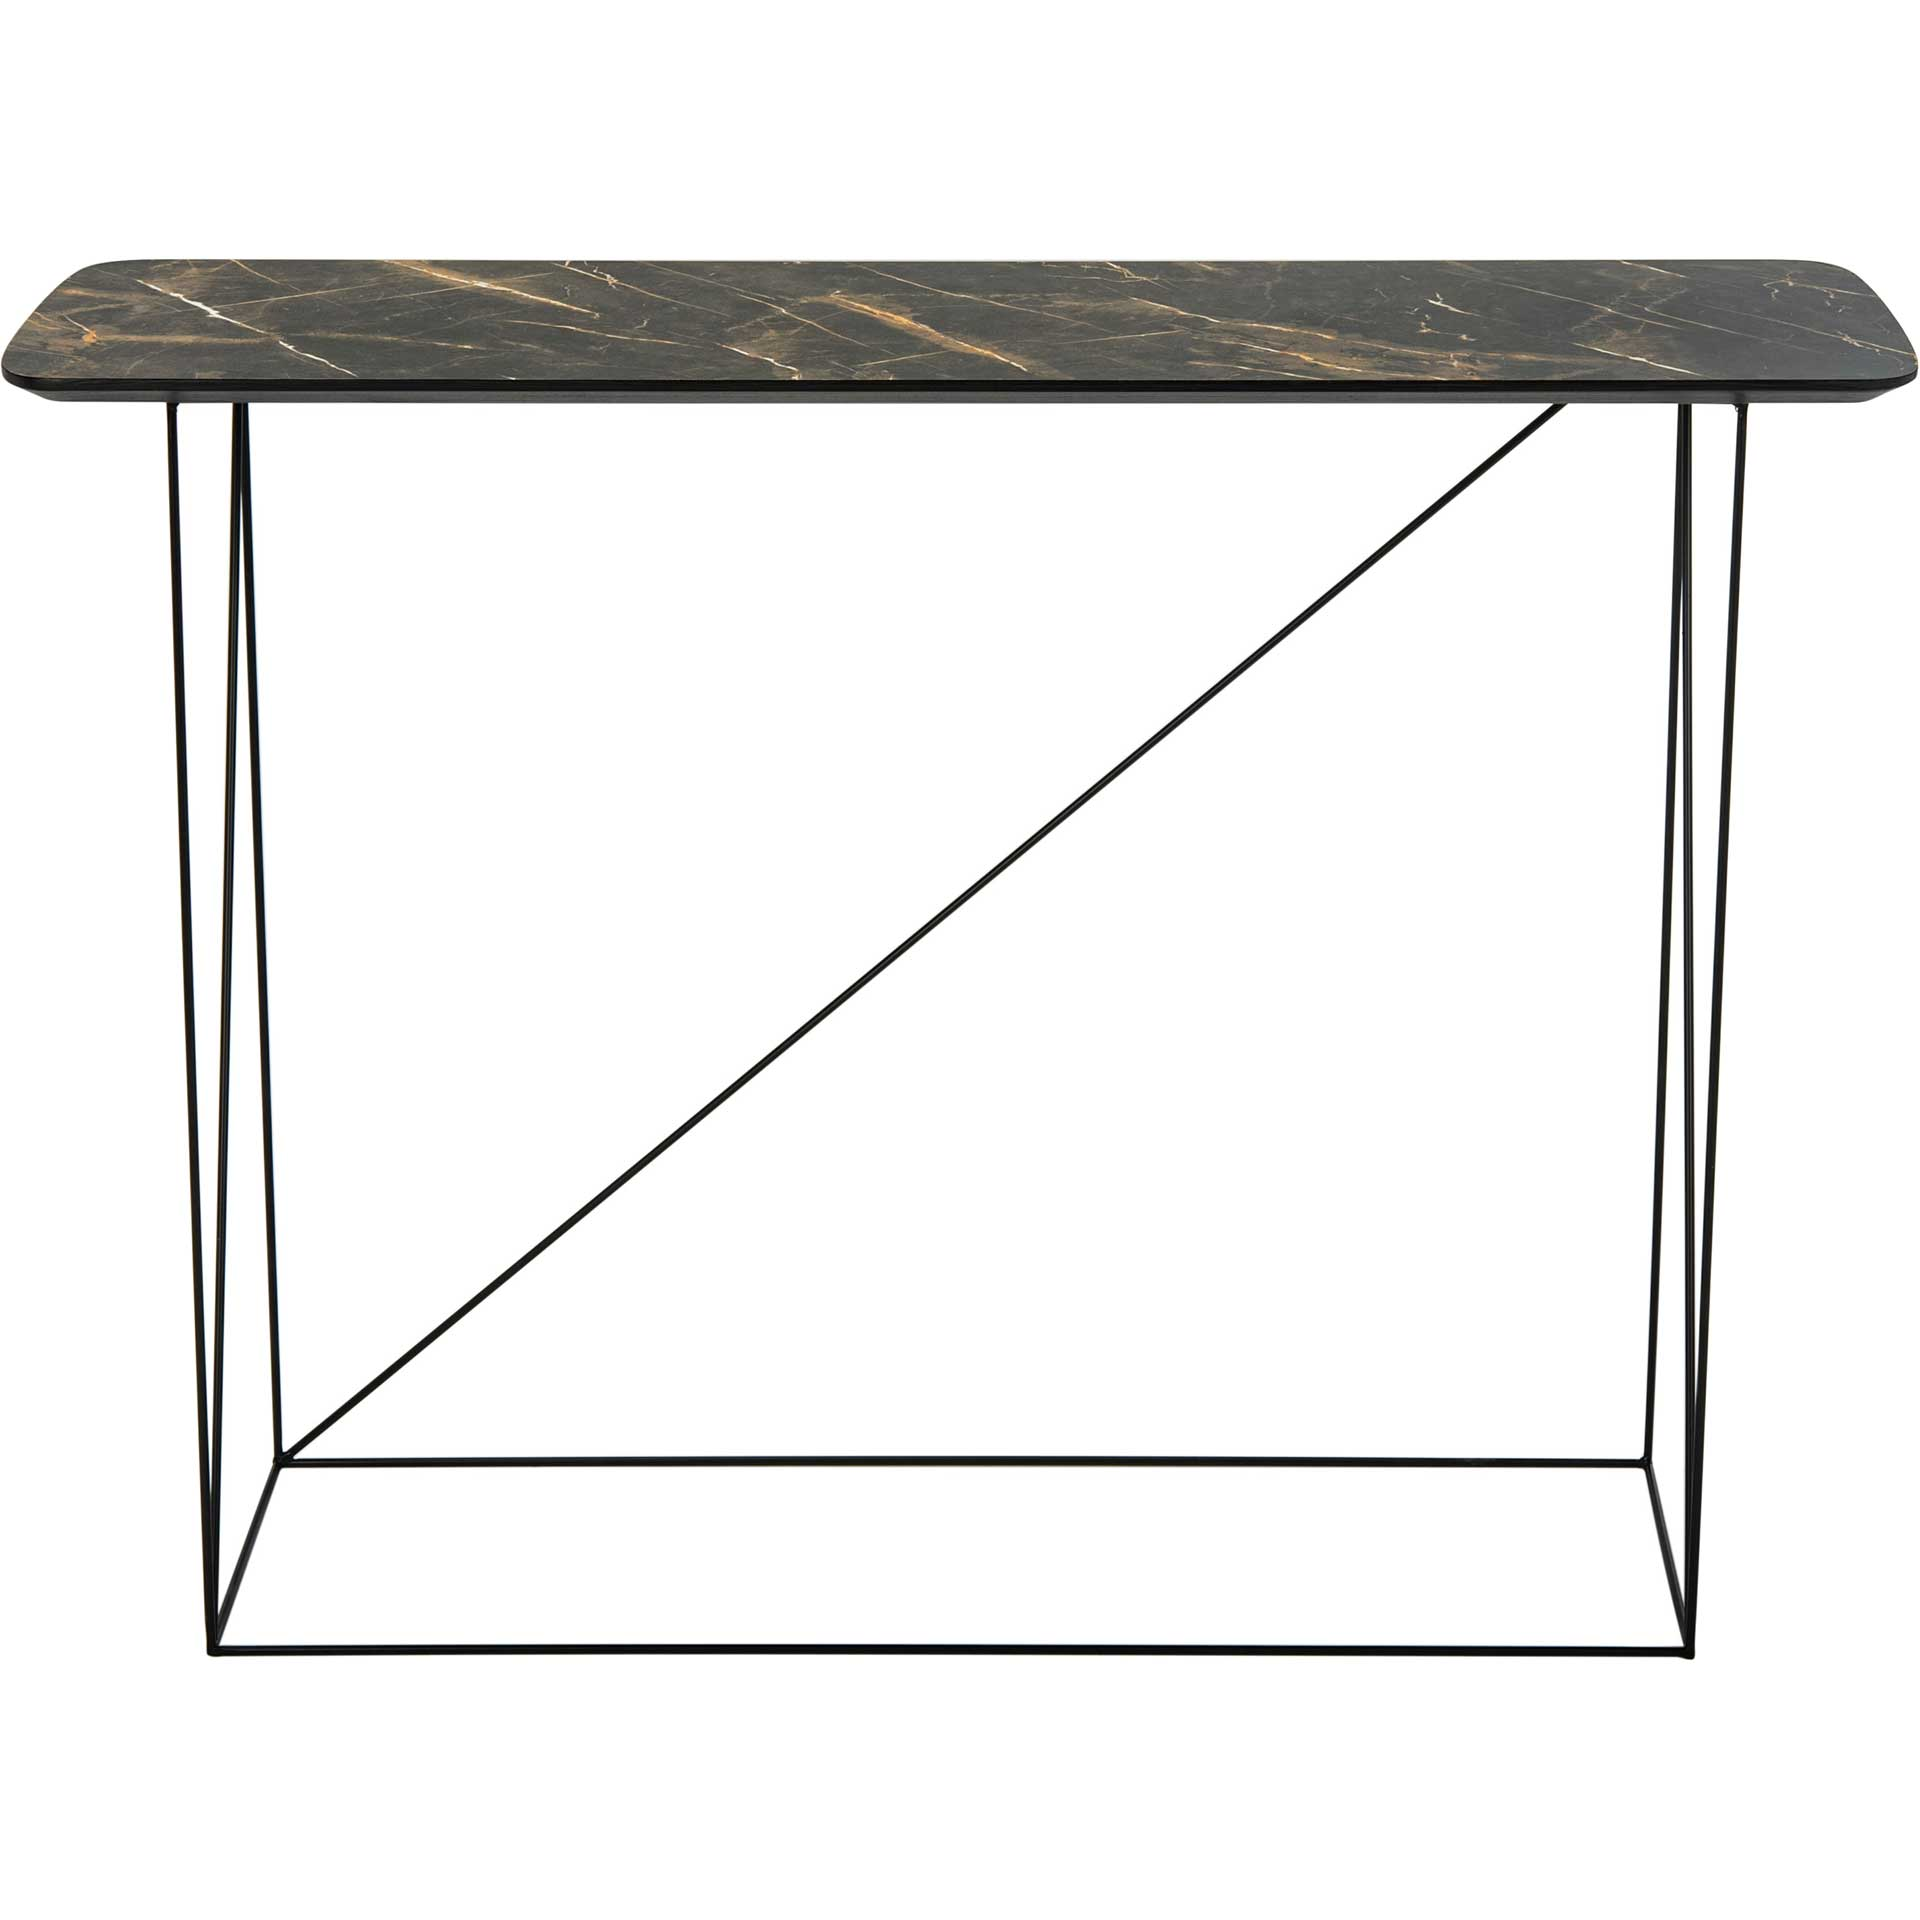 Ryder Console Table Dark Gray/Black